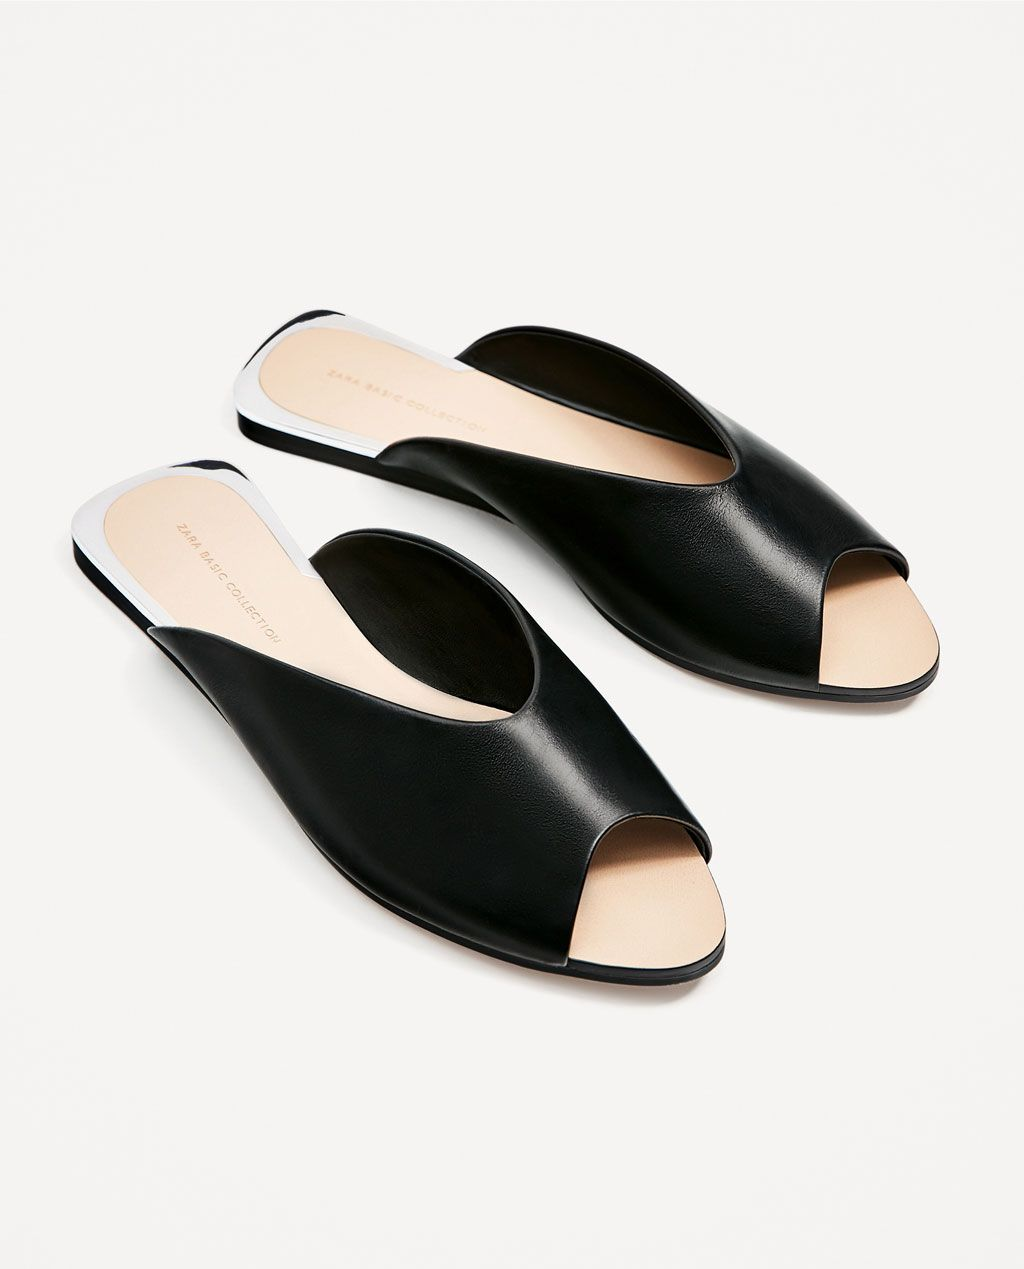 4e3122d6e82 Image 1 of V-CUT LEATHER SLIDES from Zara